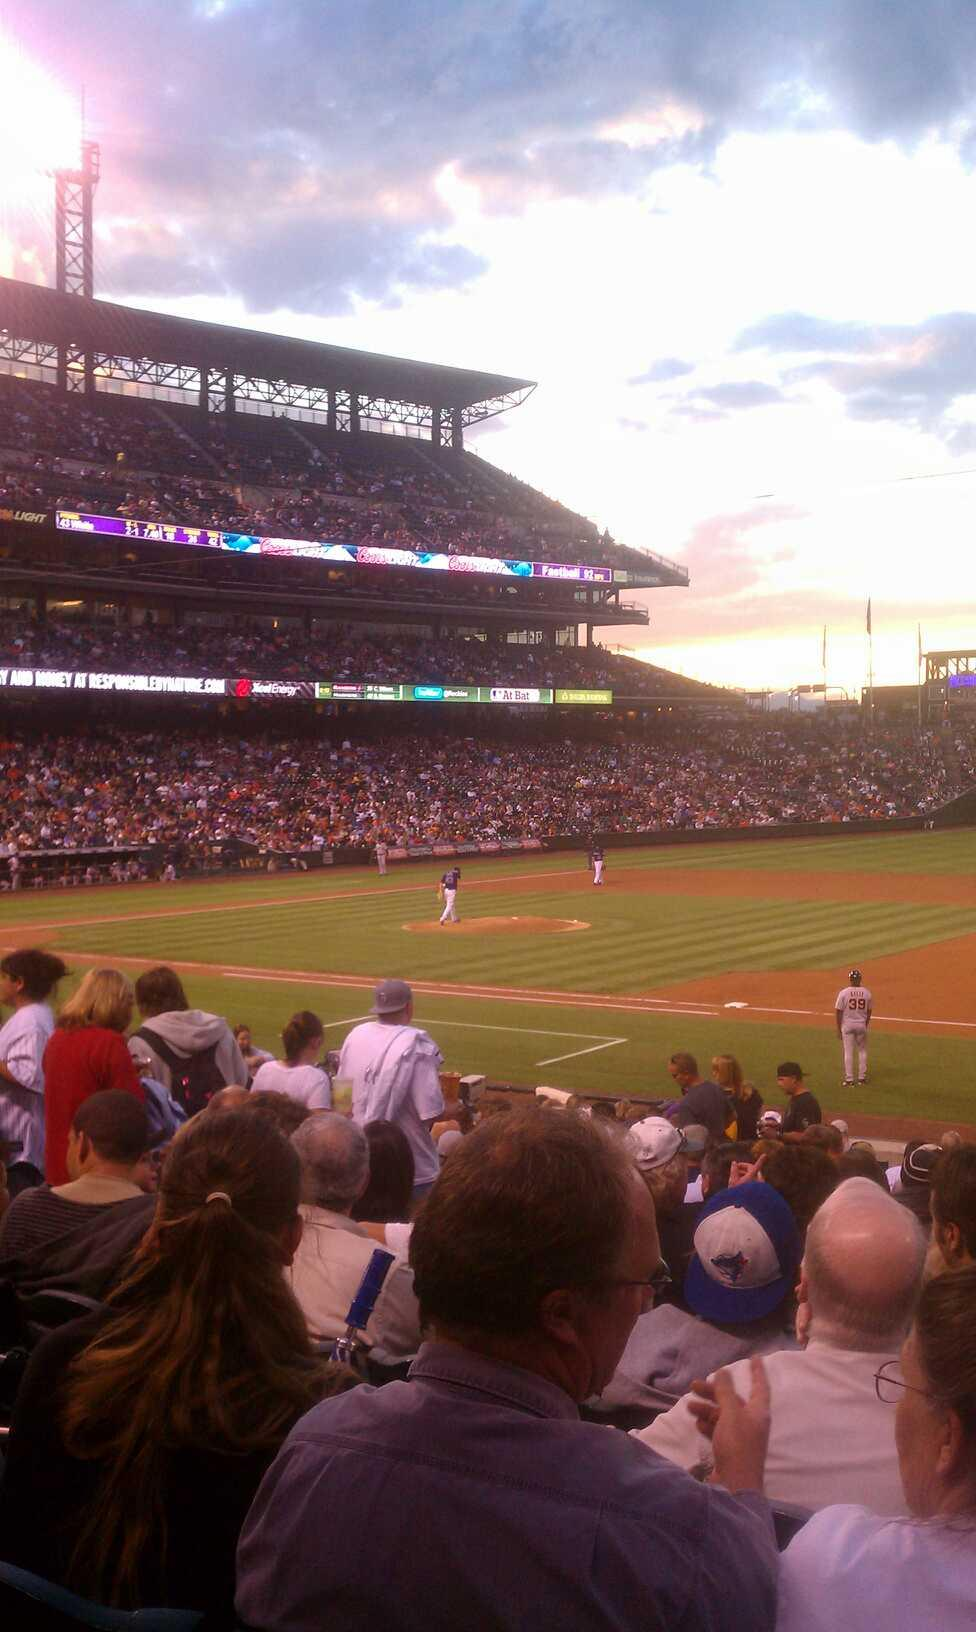 Coors Field Section 120 Row 24 Seat 4 and 5